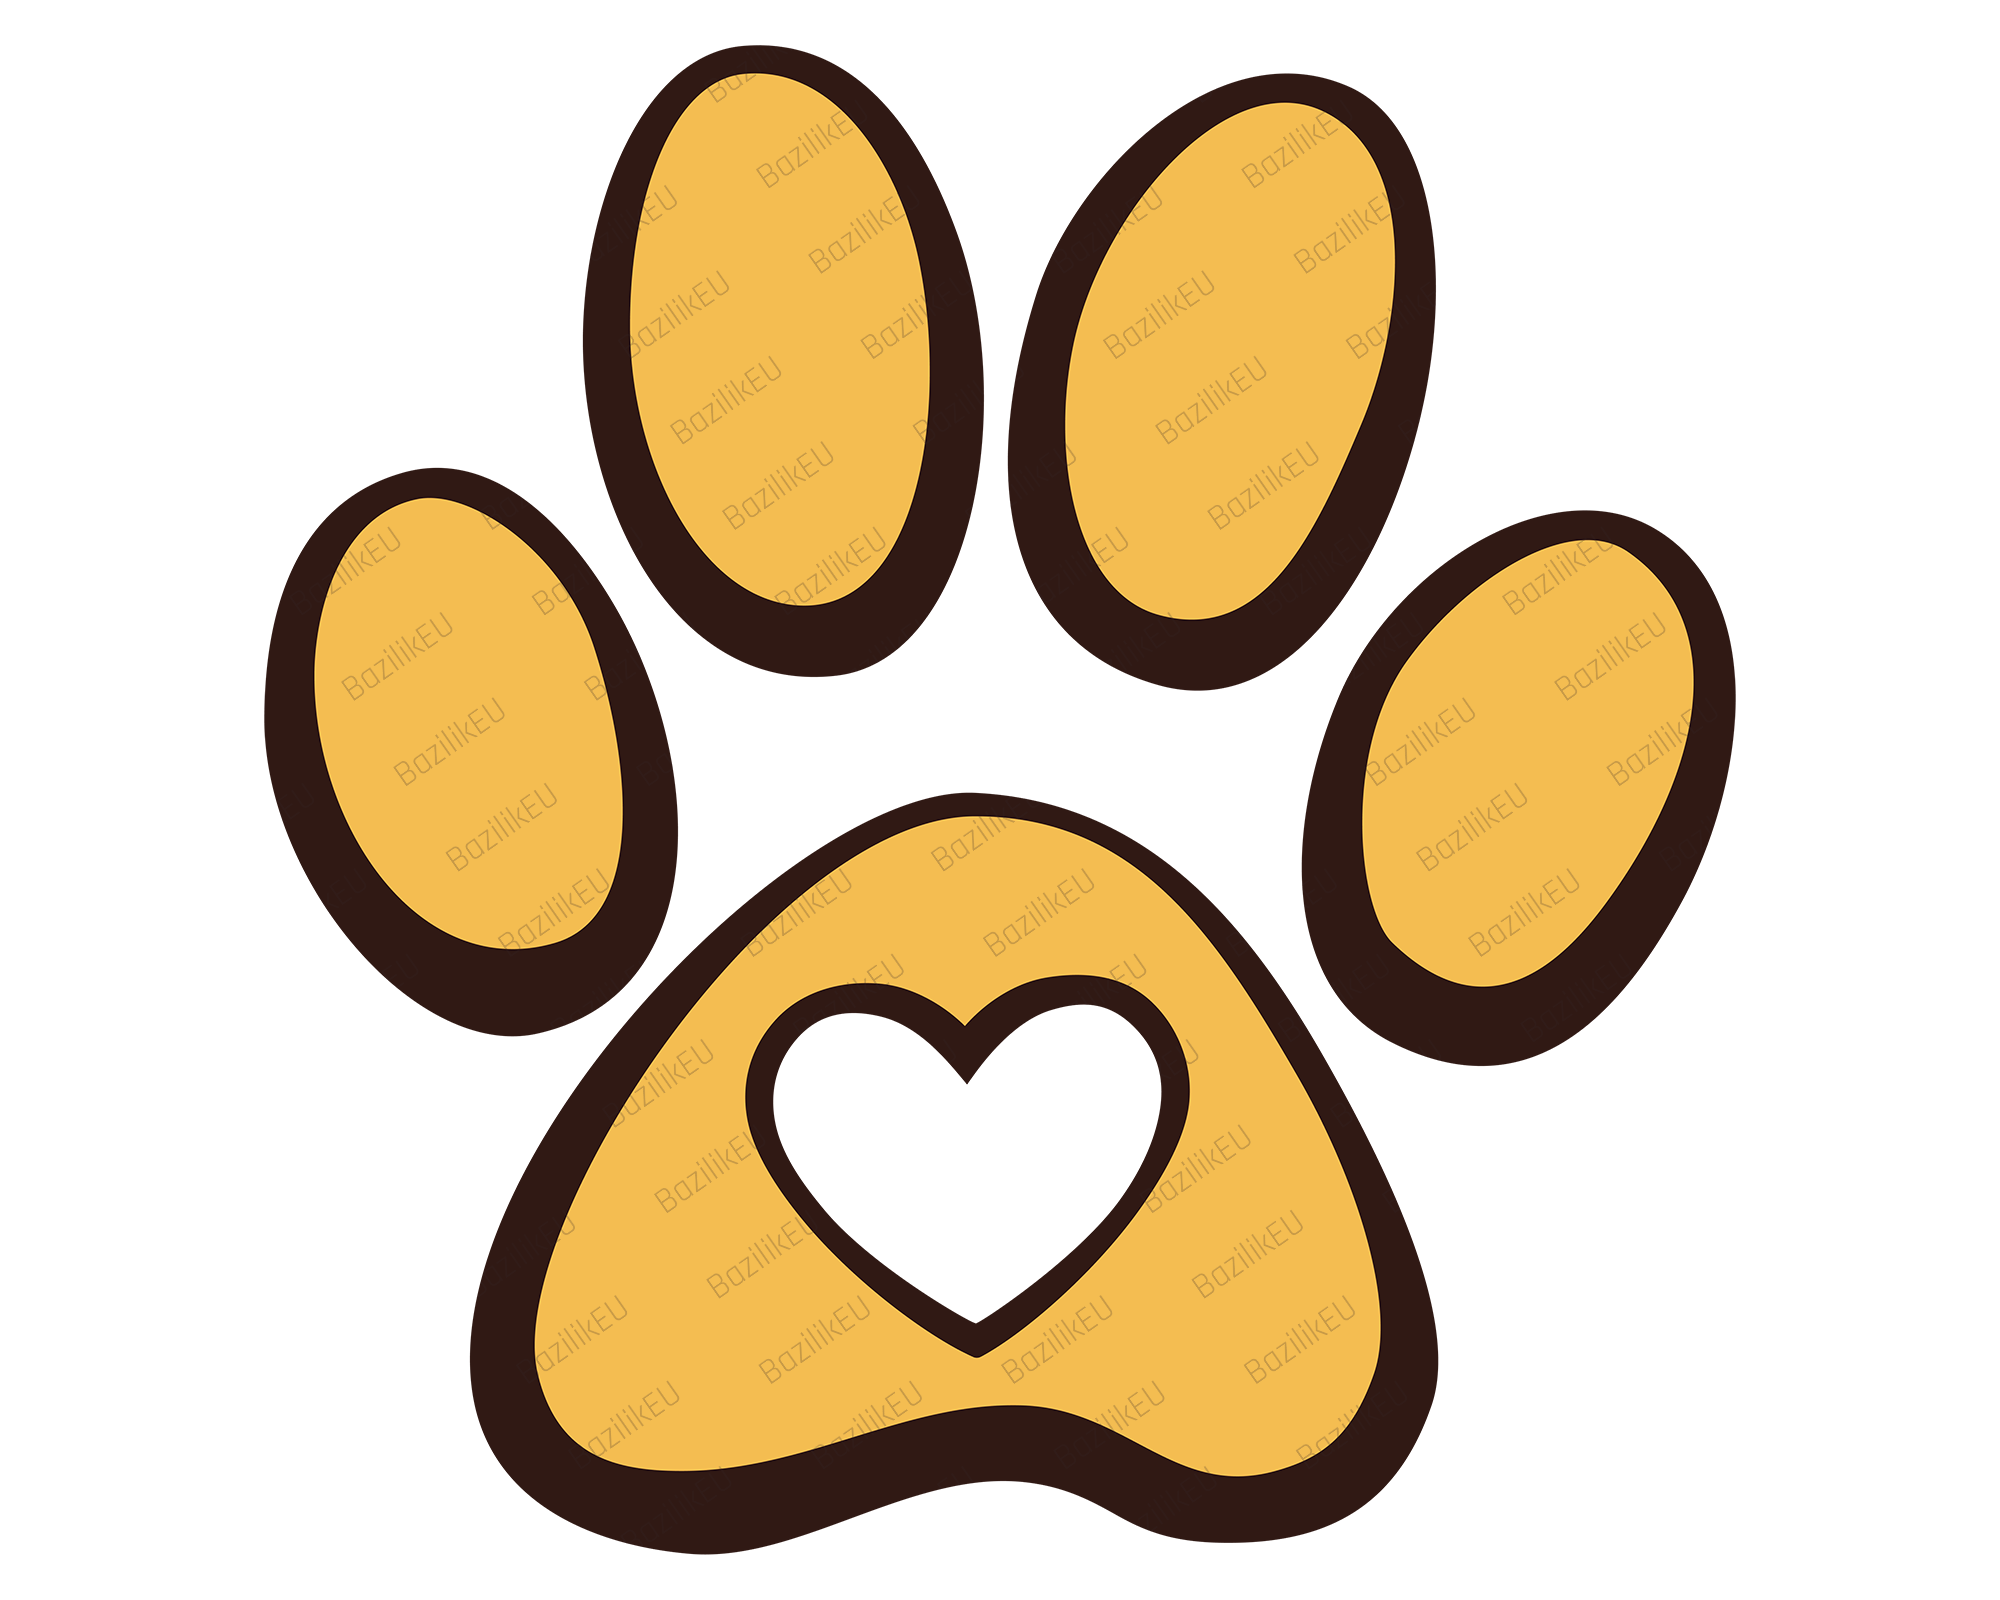 Yellow Paw Print Png – Try to search more transparent images related to paw print png |.